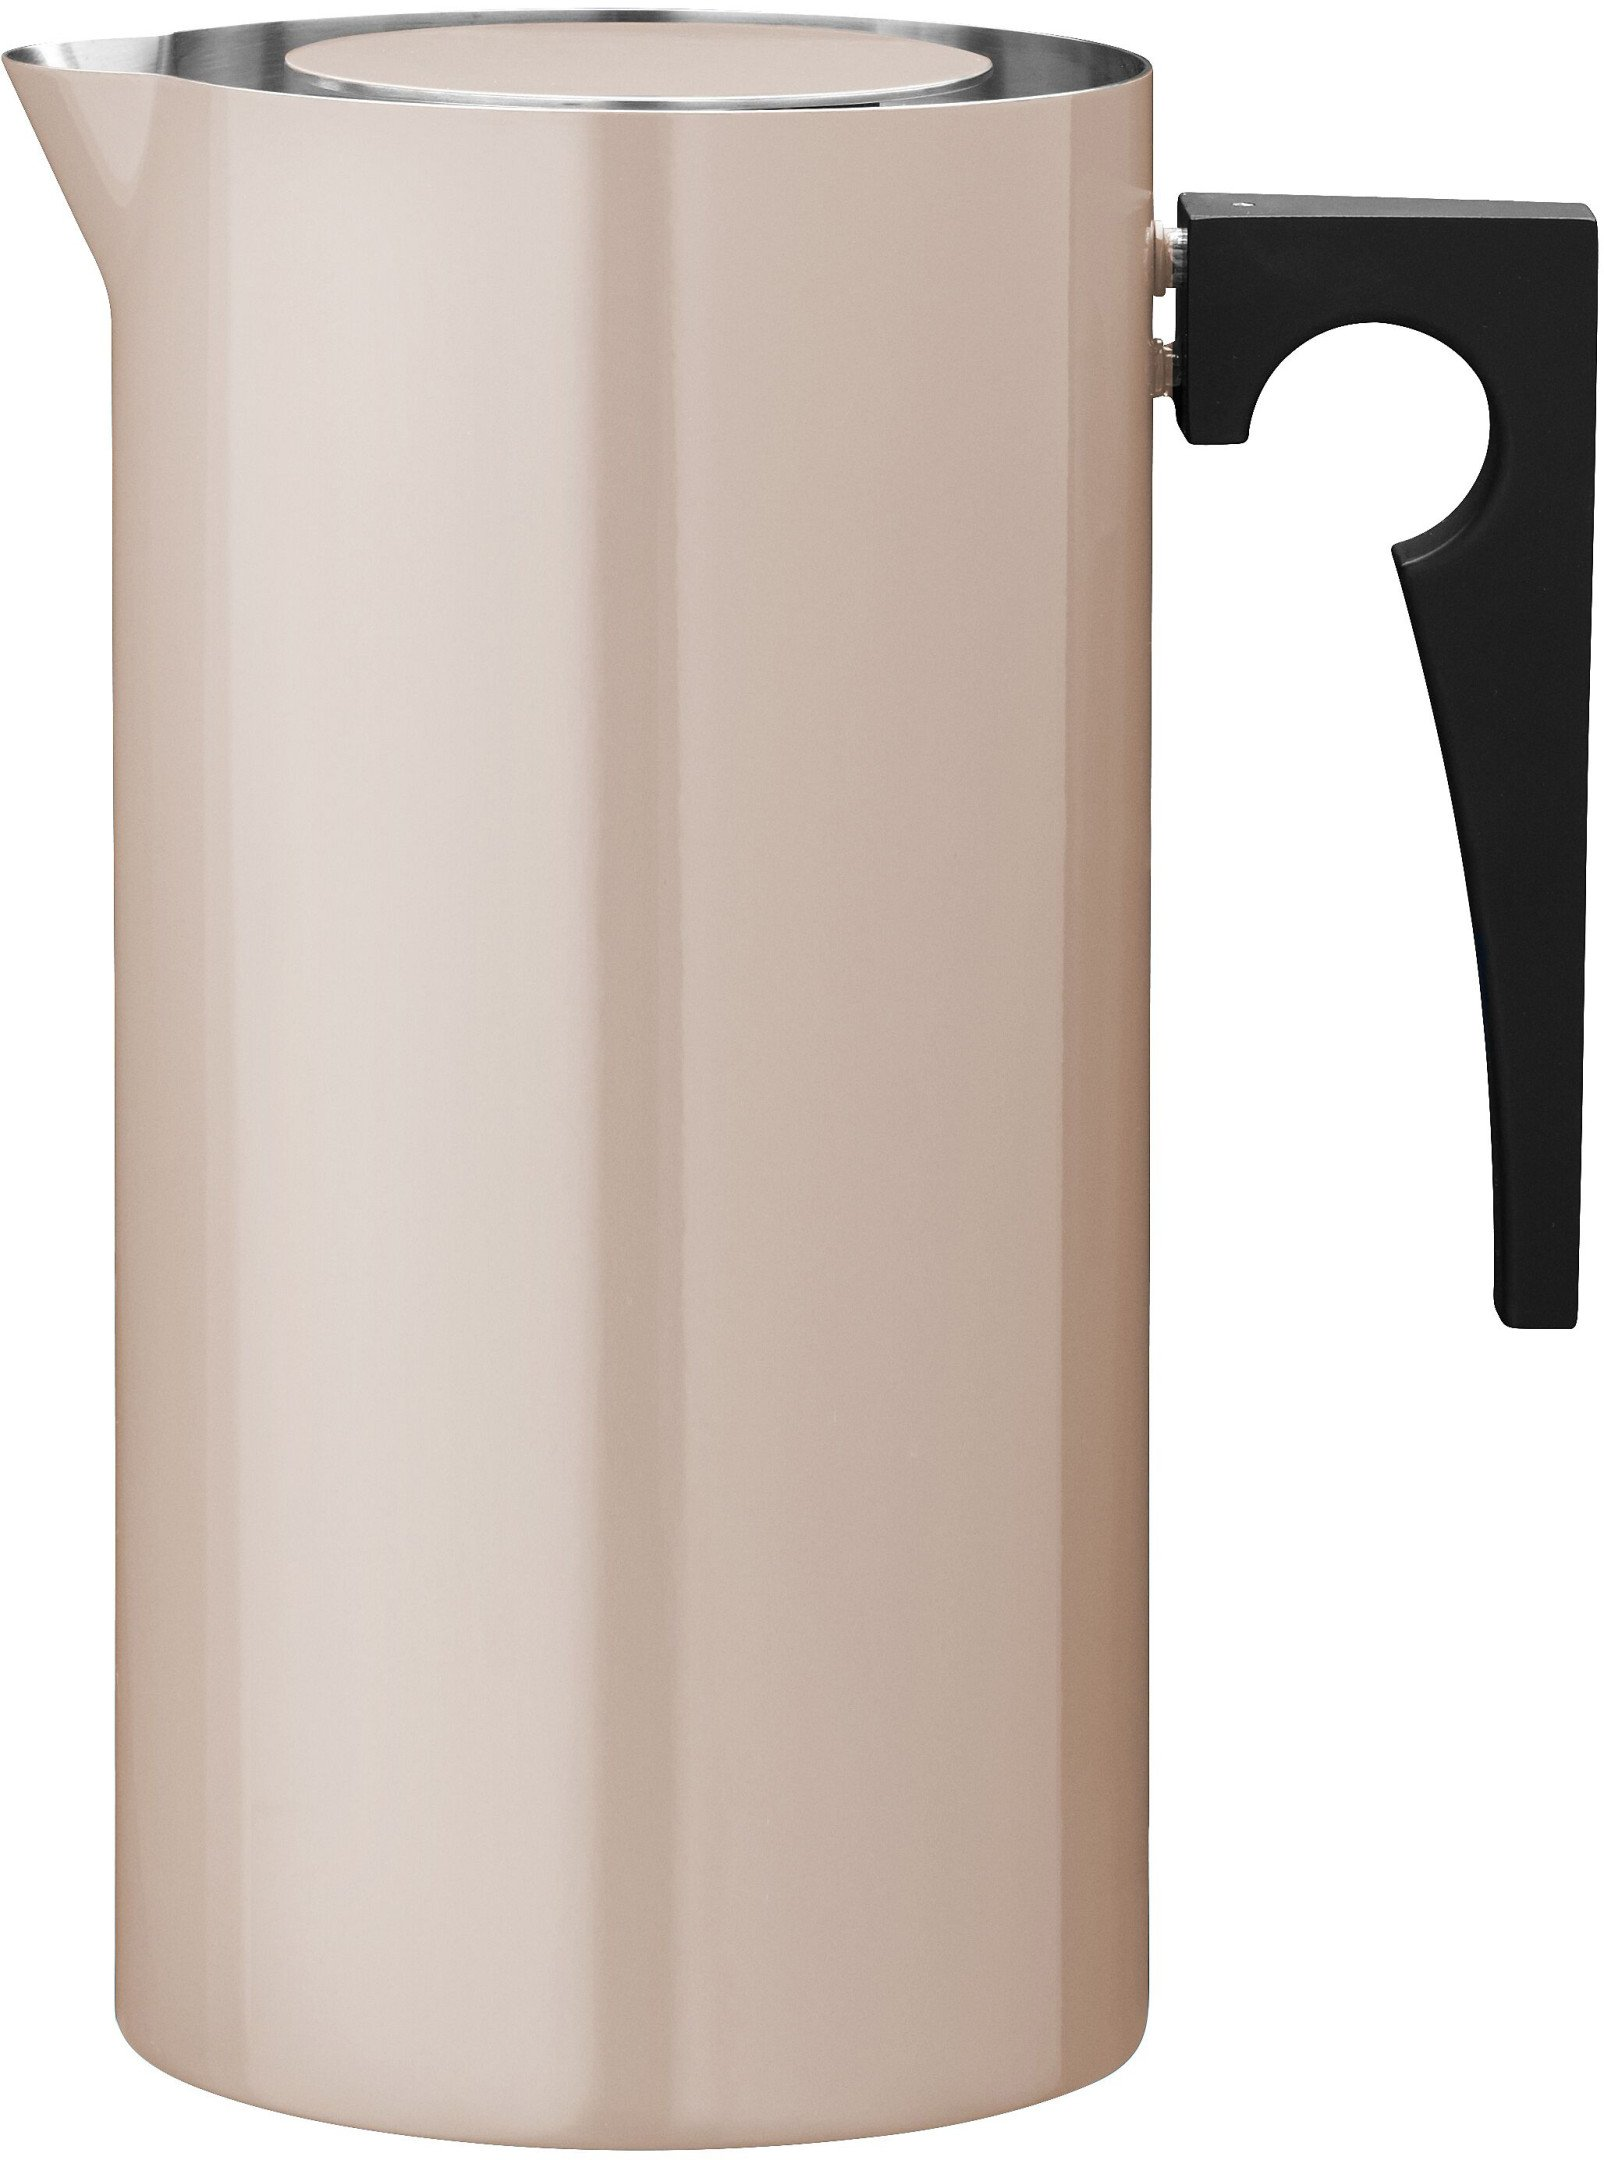 Cylinda-line 50th Anniversary French Press 1 L Powder by A. Jacobsen for Stelton